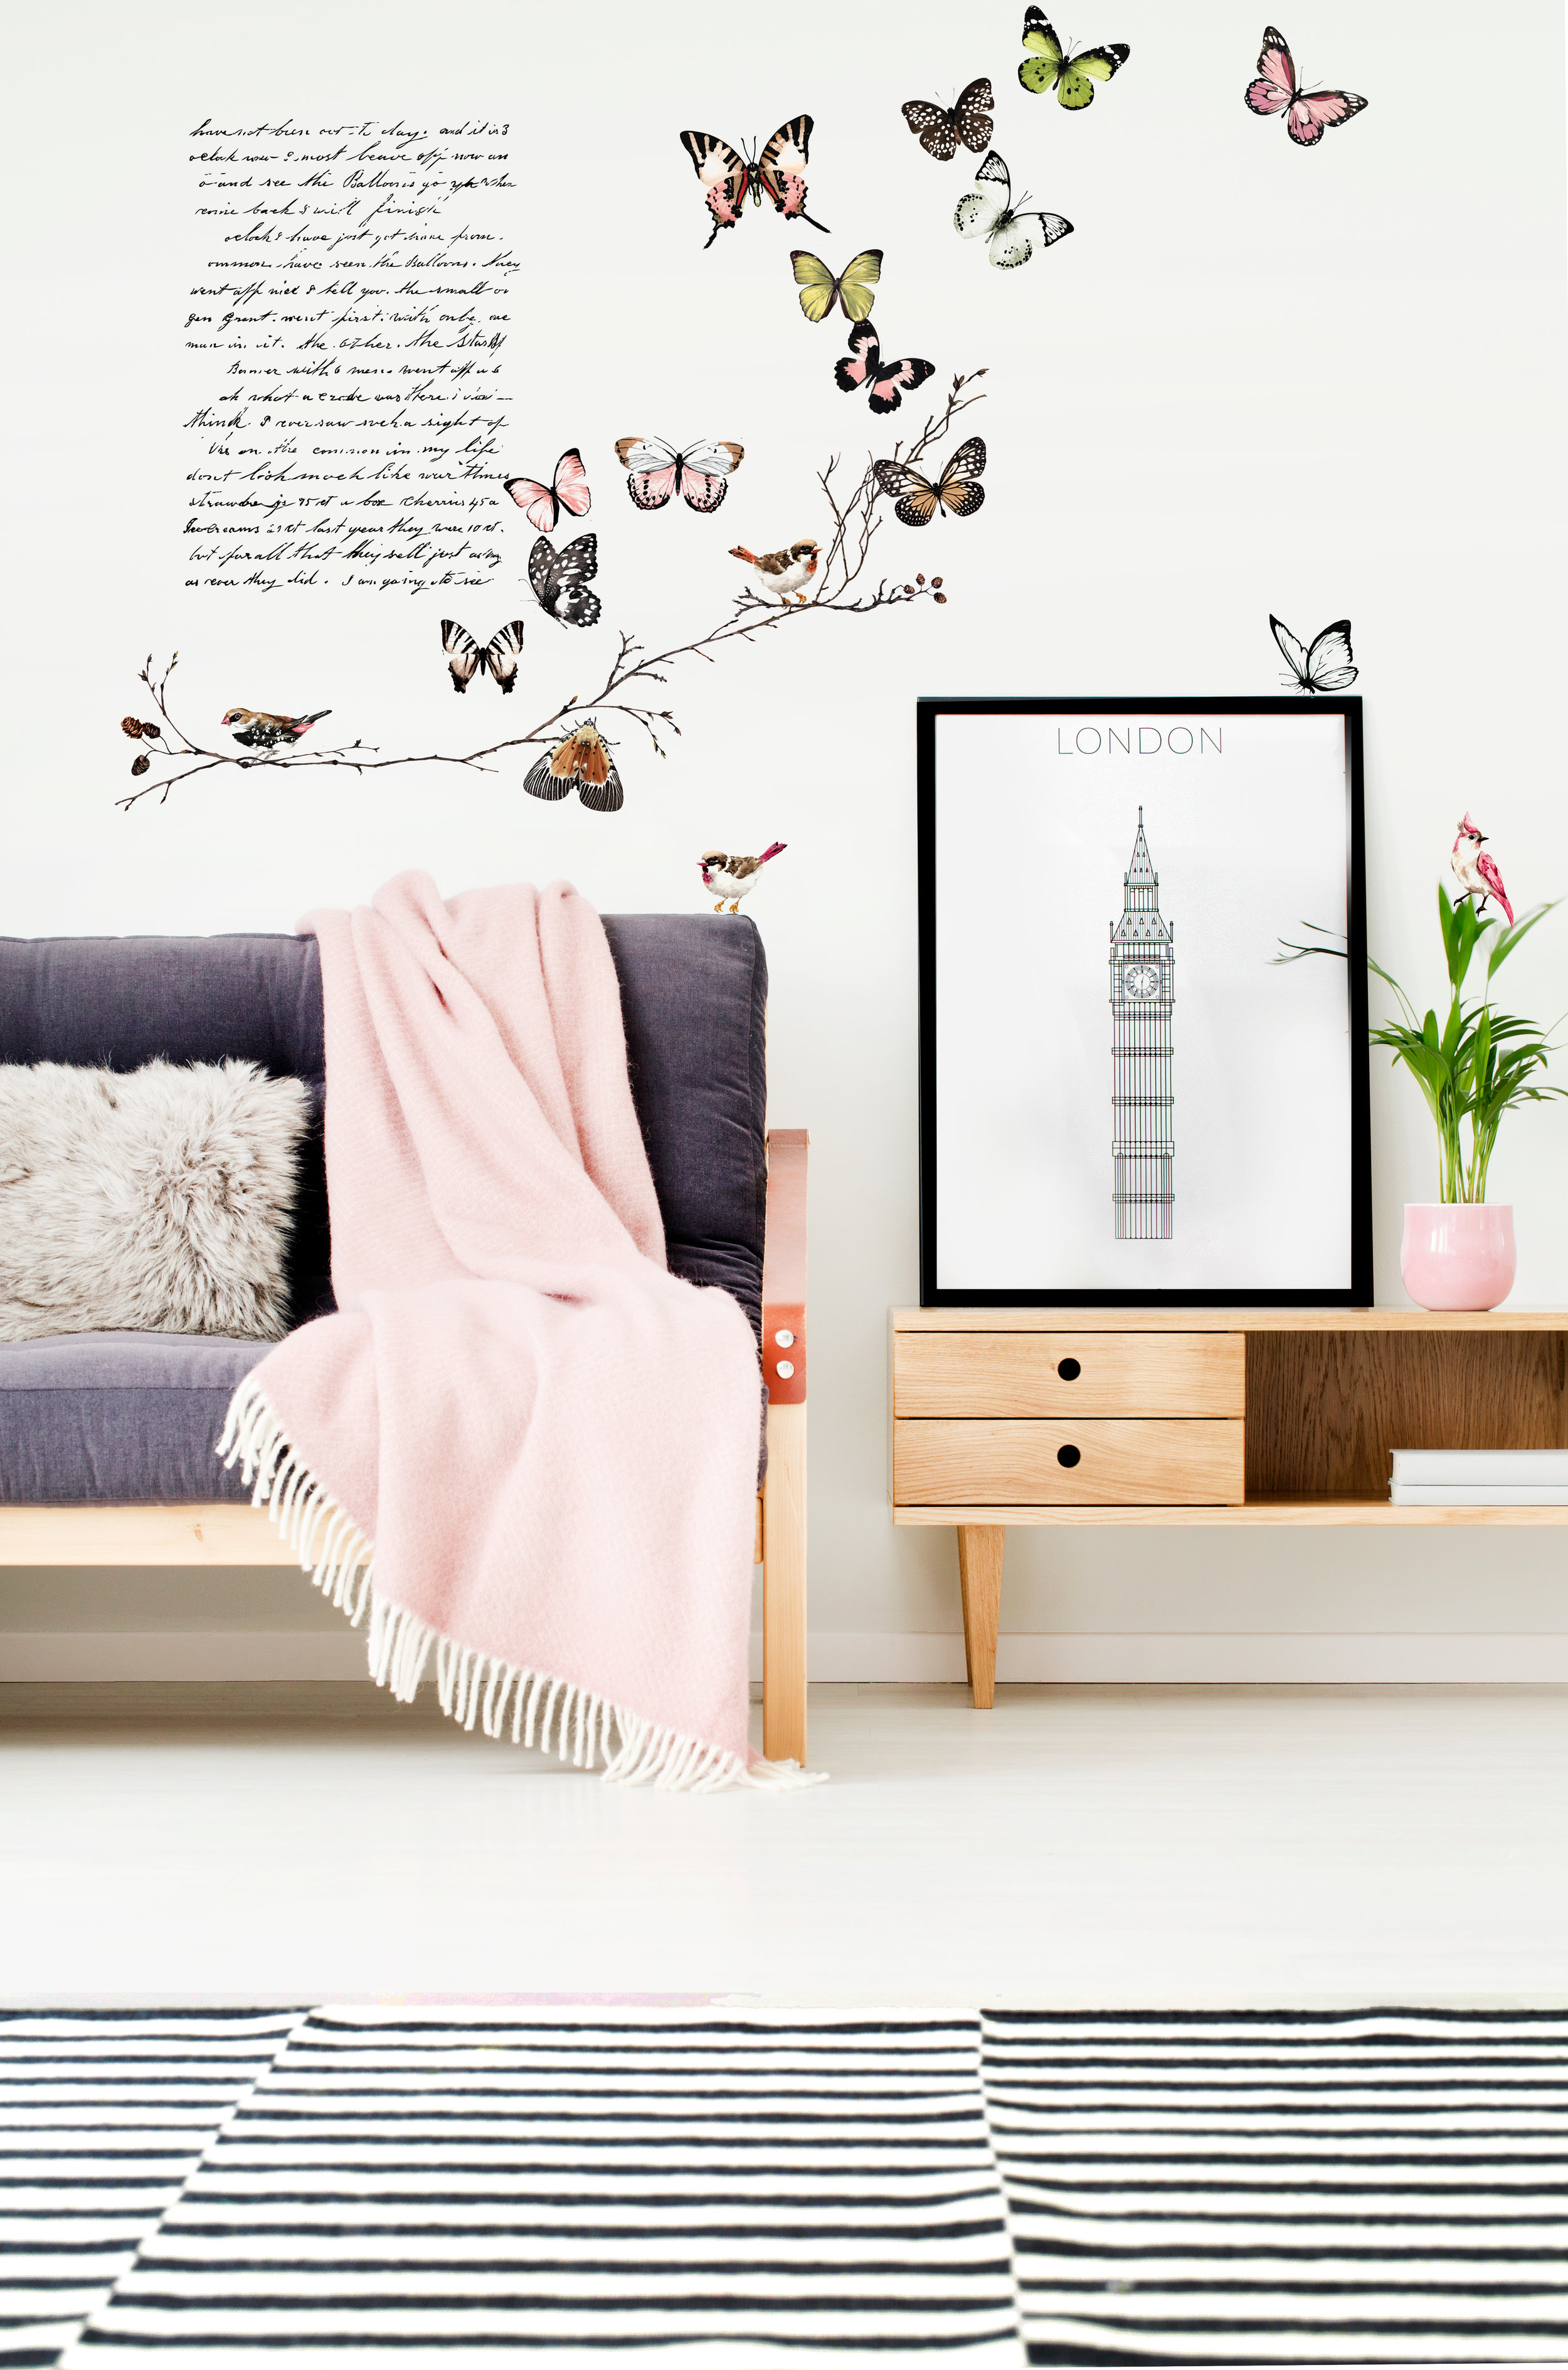 Add a touch of whimsy by adding the transfers direct to your walls!